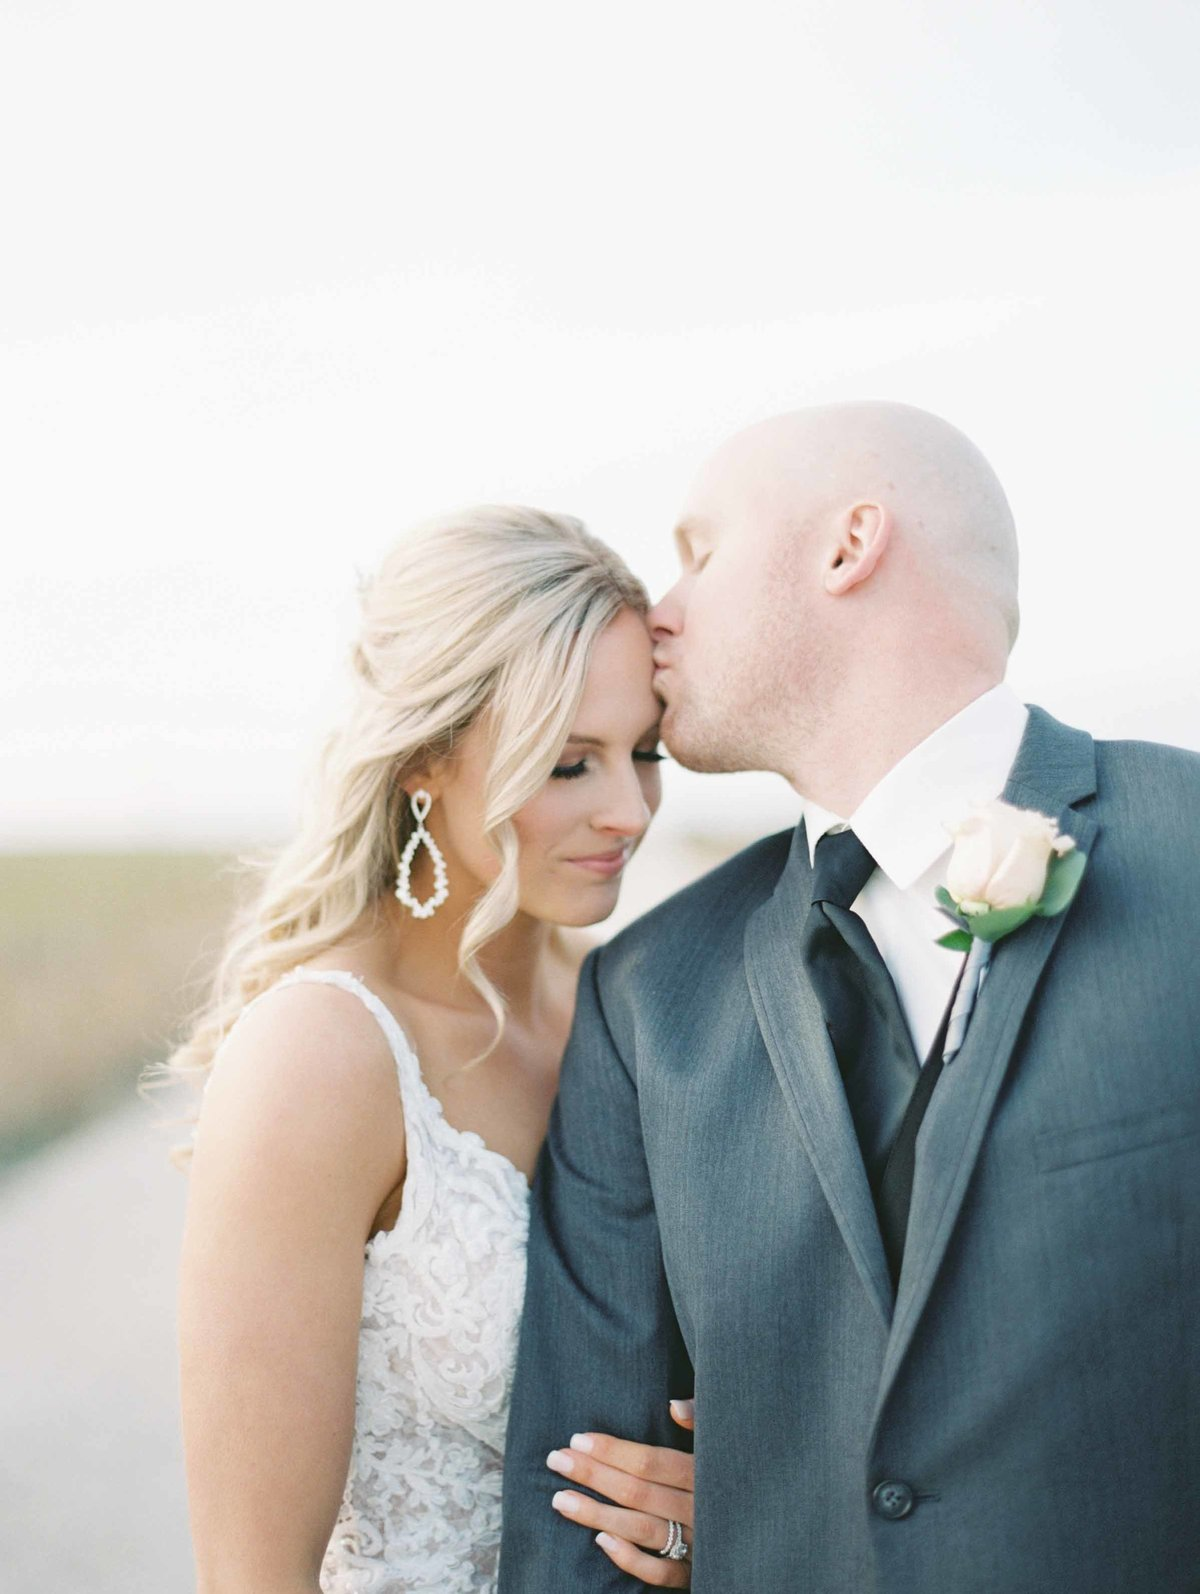 Angel_owens_photography_wedding85